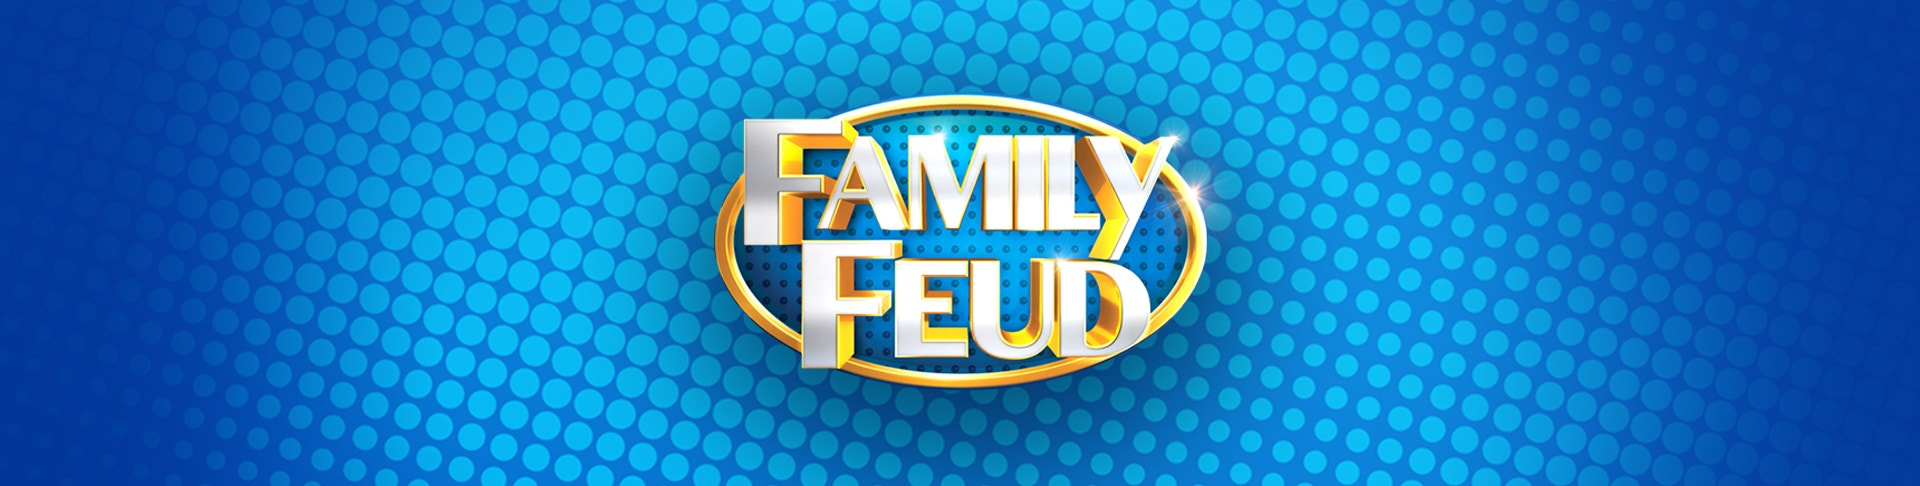 About Family Feud - Network Ten